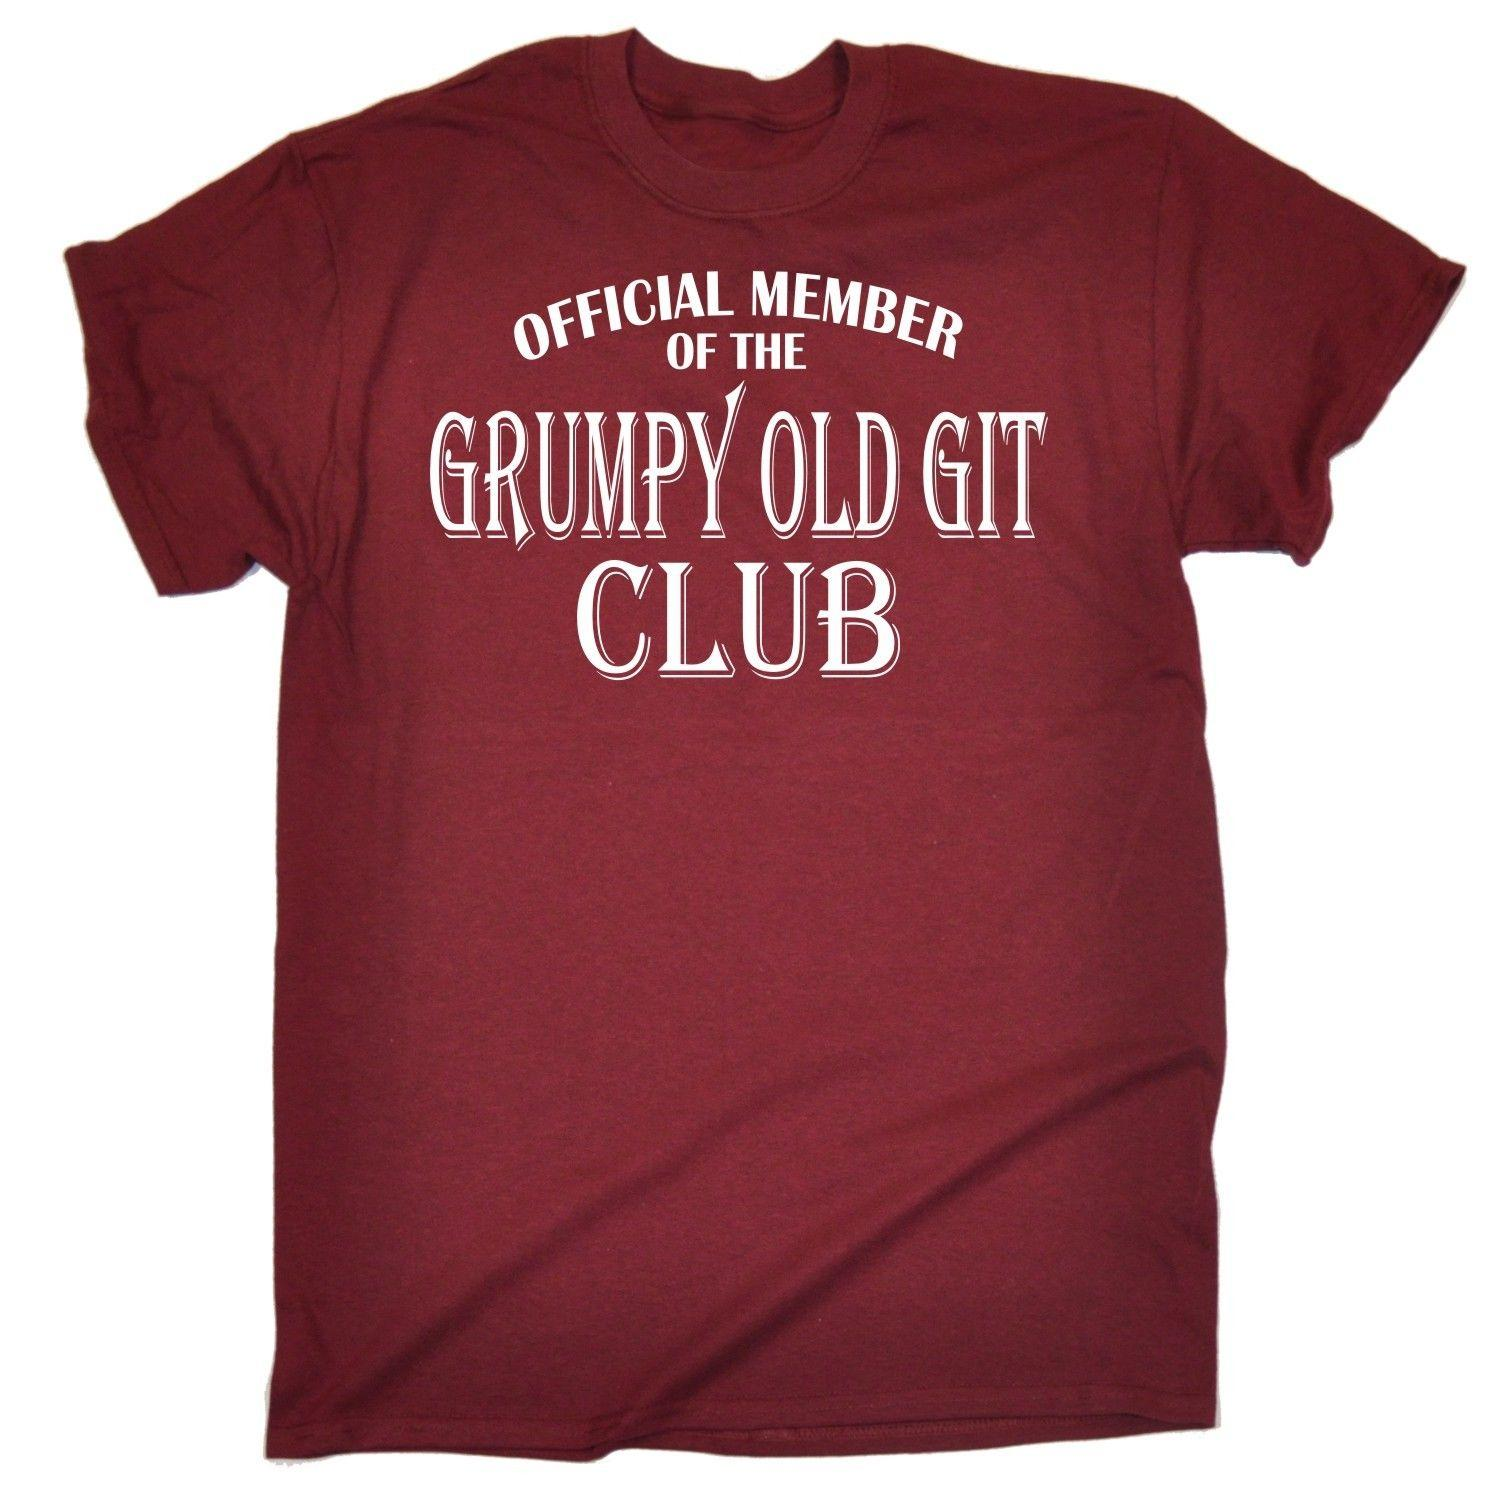 Funny T Shirts MenS Grumpy Old Git Shirt Dad Grandad Uncle Birthday Tshirt Casual Tee Crazy Design Best Sites From Fatcuckoo